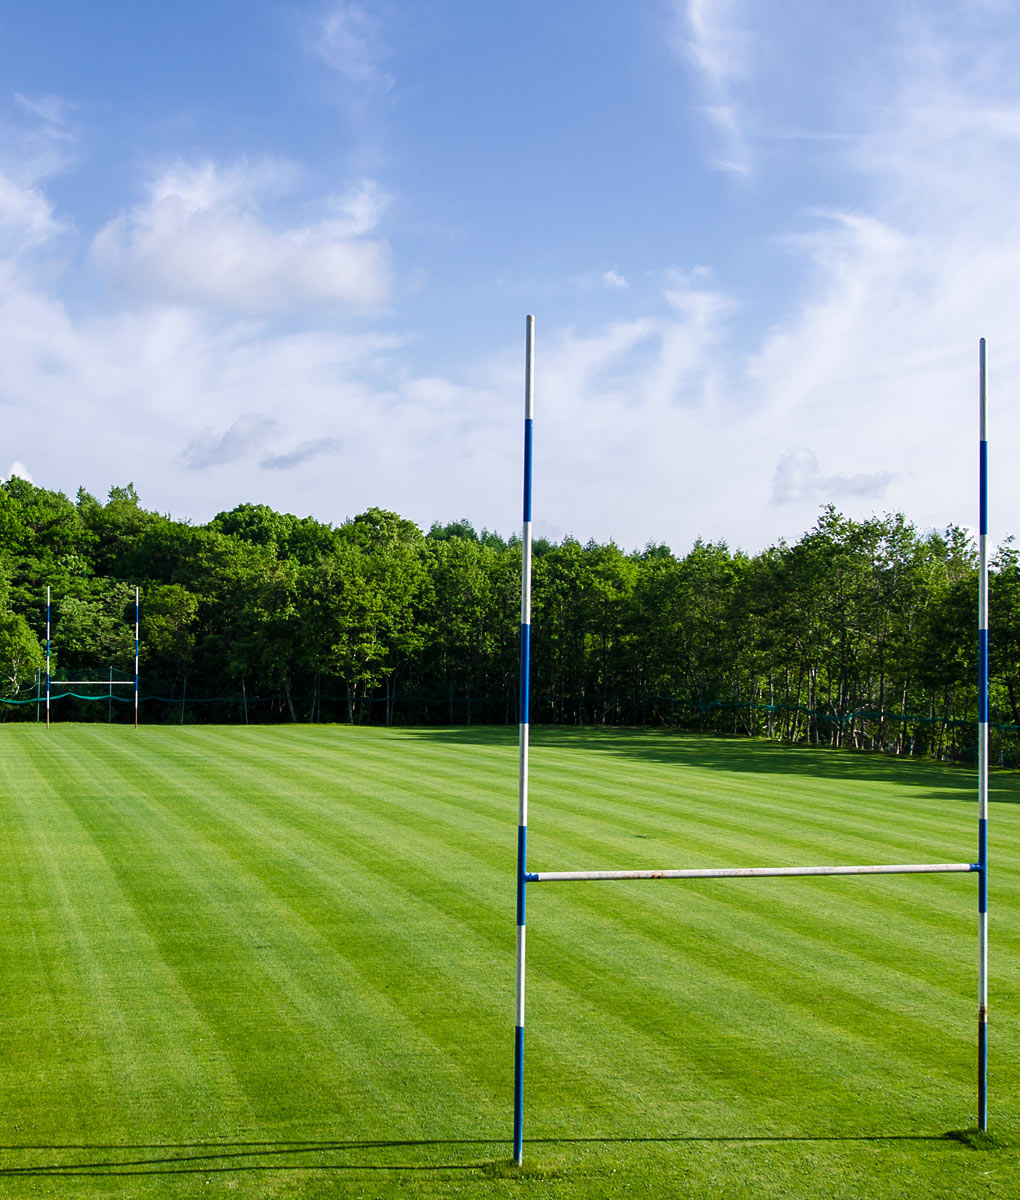 Amenity Grass To Seed Or Repair A Rugby Field